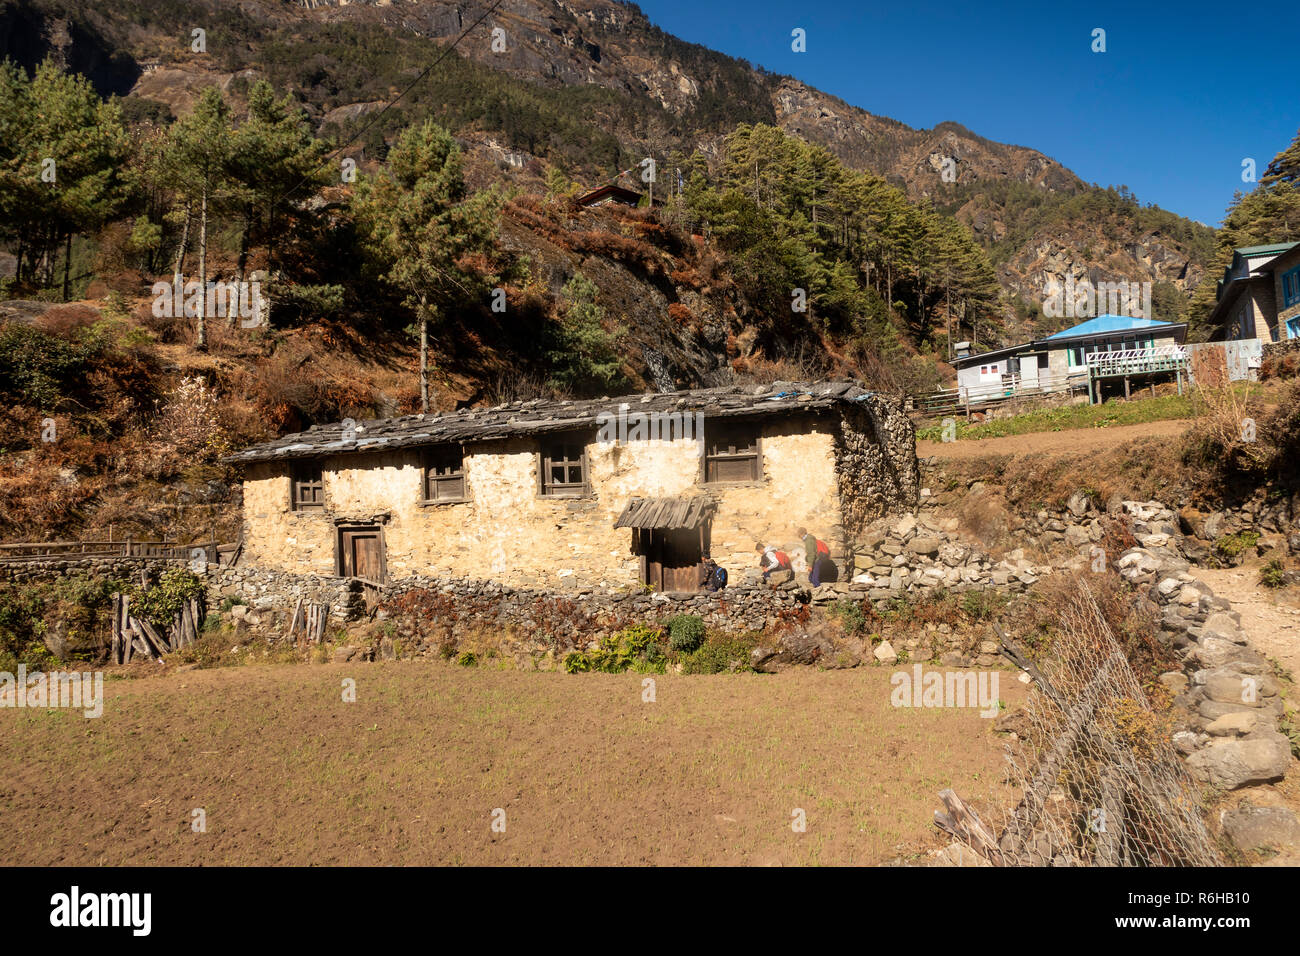 Nepal, Monju, (Manjo) traditional unmodernised old house with wooden roof at edge of village - Stock Image